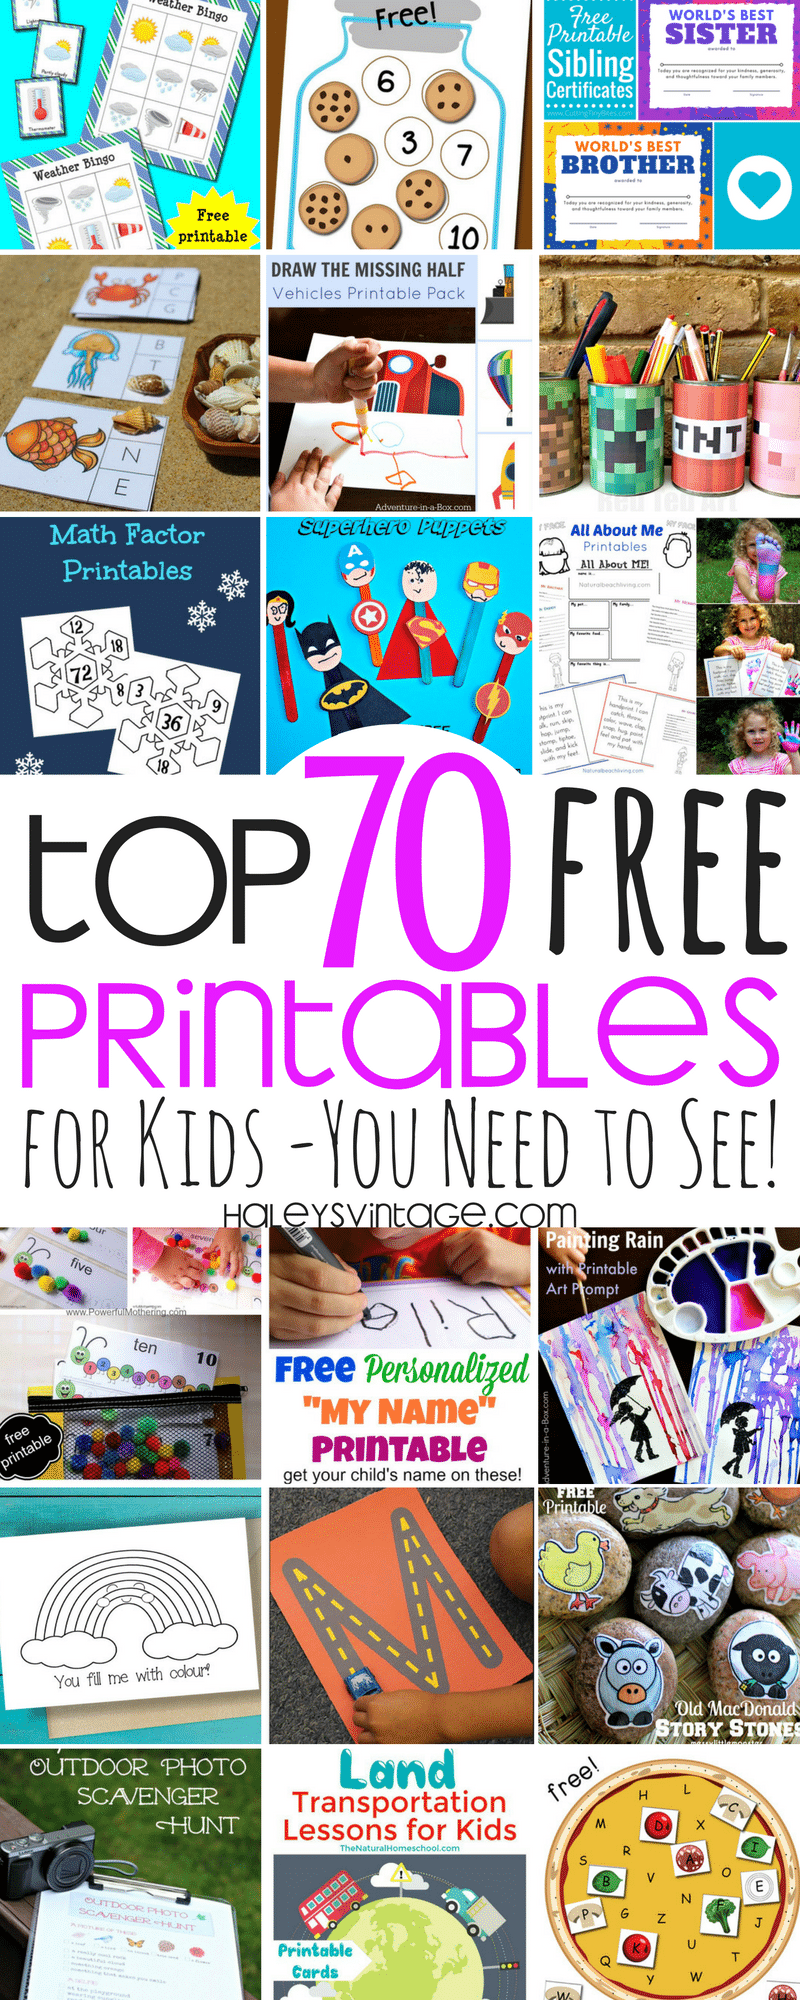 Who doesn't love free printables? Some are educational, and others are just for fun, and today I am sharing My Top 70 Free Printables for Kids!